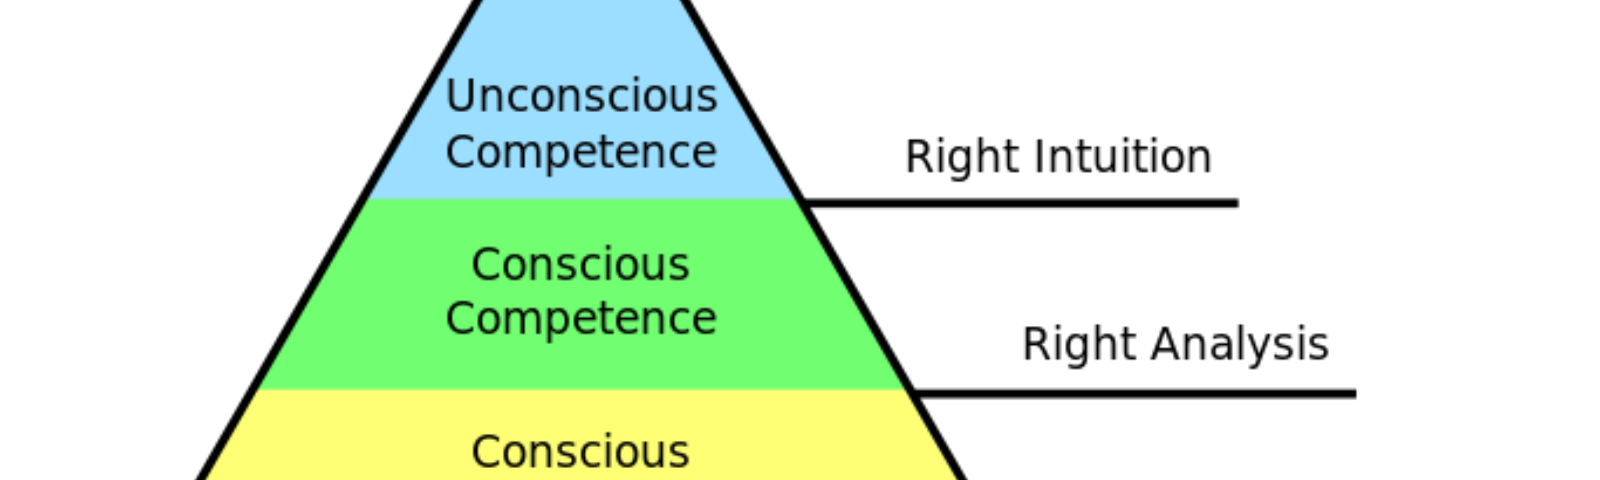 Competence Hierarchy adapted from Noel Burch by Igor Kokcharov